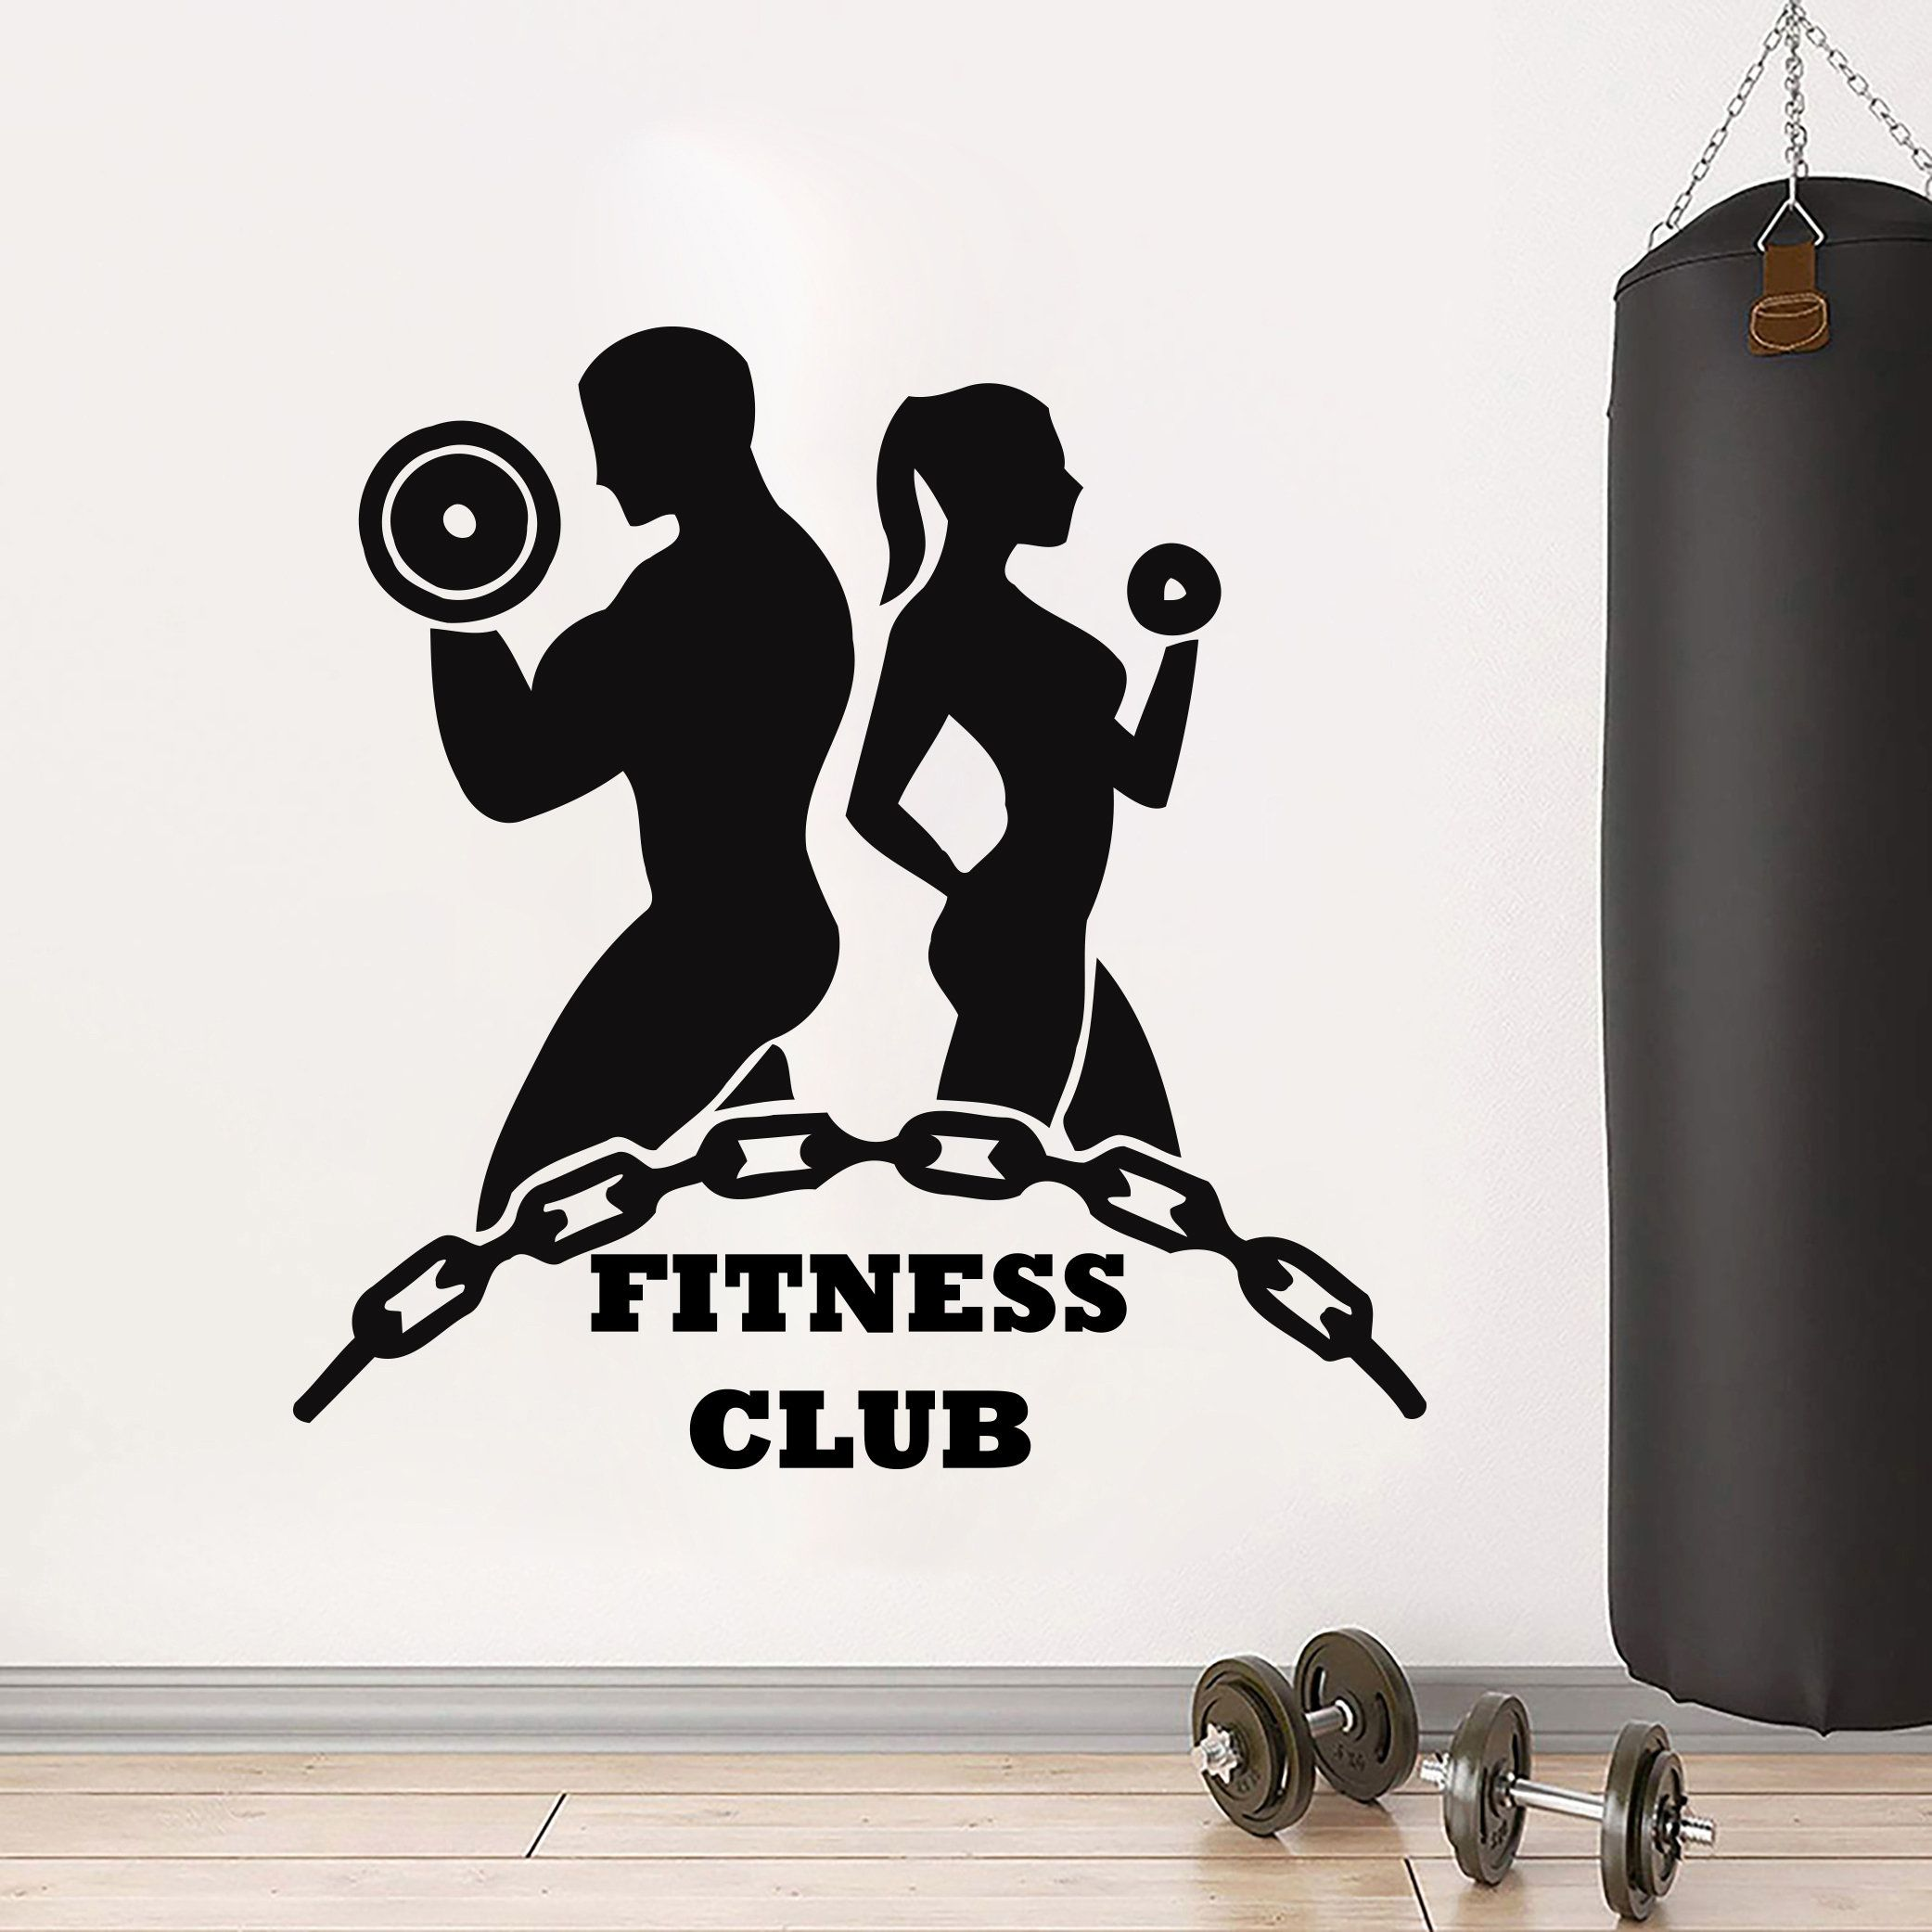 Fitness Decor Art Quotes Gym Stickers Fitness Wall Art Gifts Etsy Fitness Wall Art Gym Wall Decal Wall Art Gift